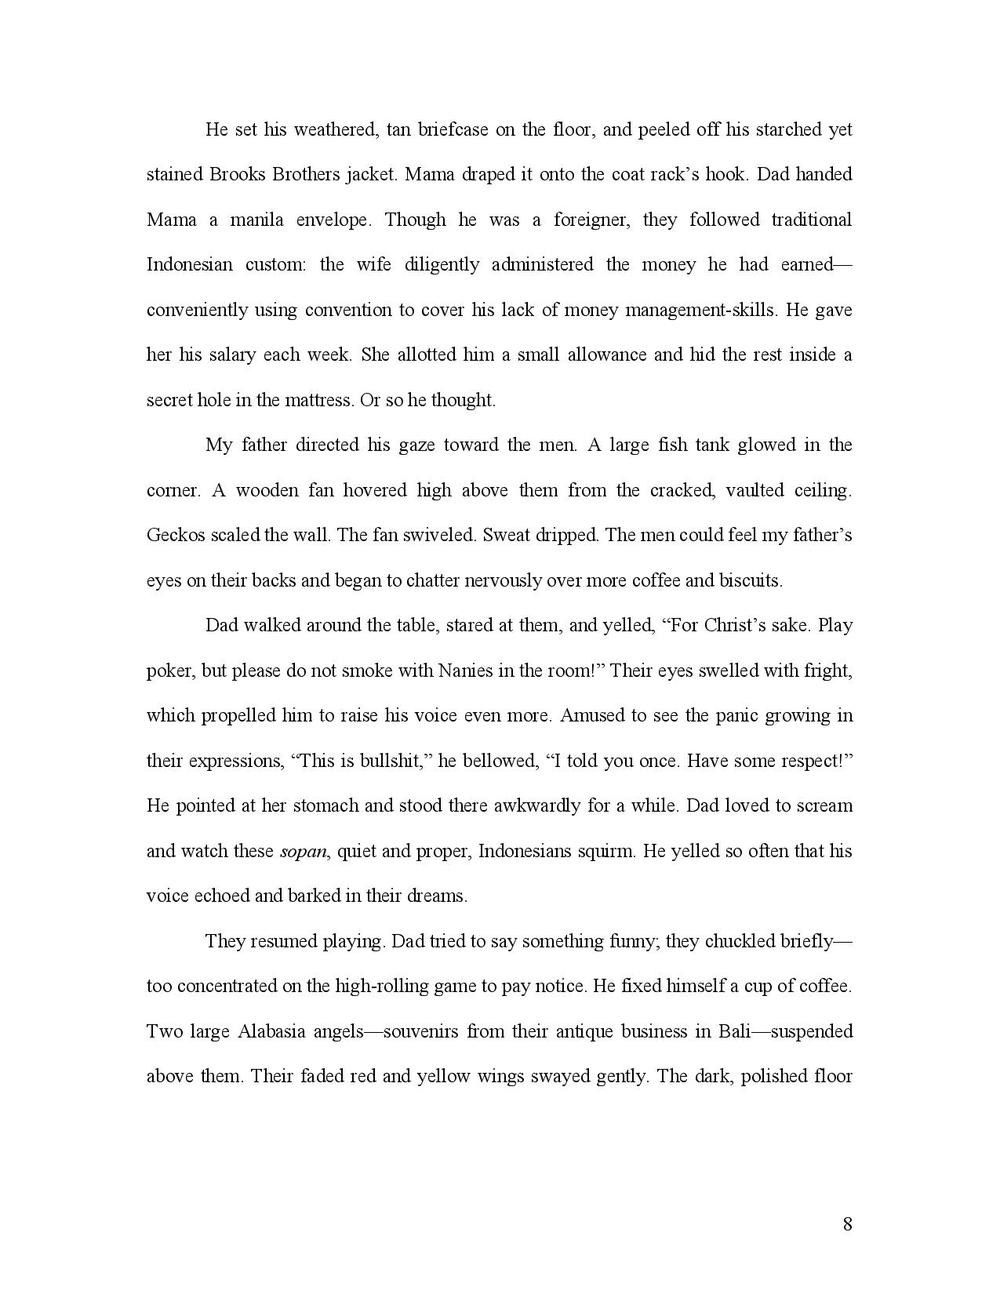 In The Cards_edit_excerpt-page-008.jpg